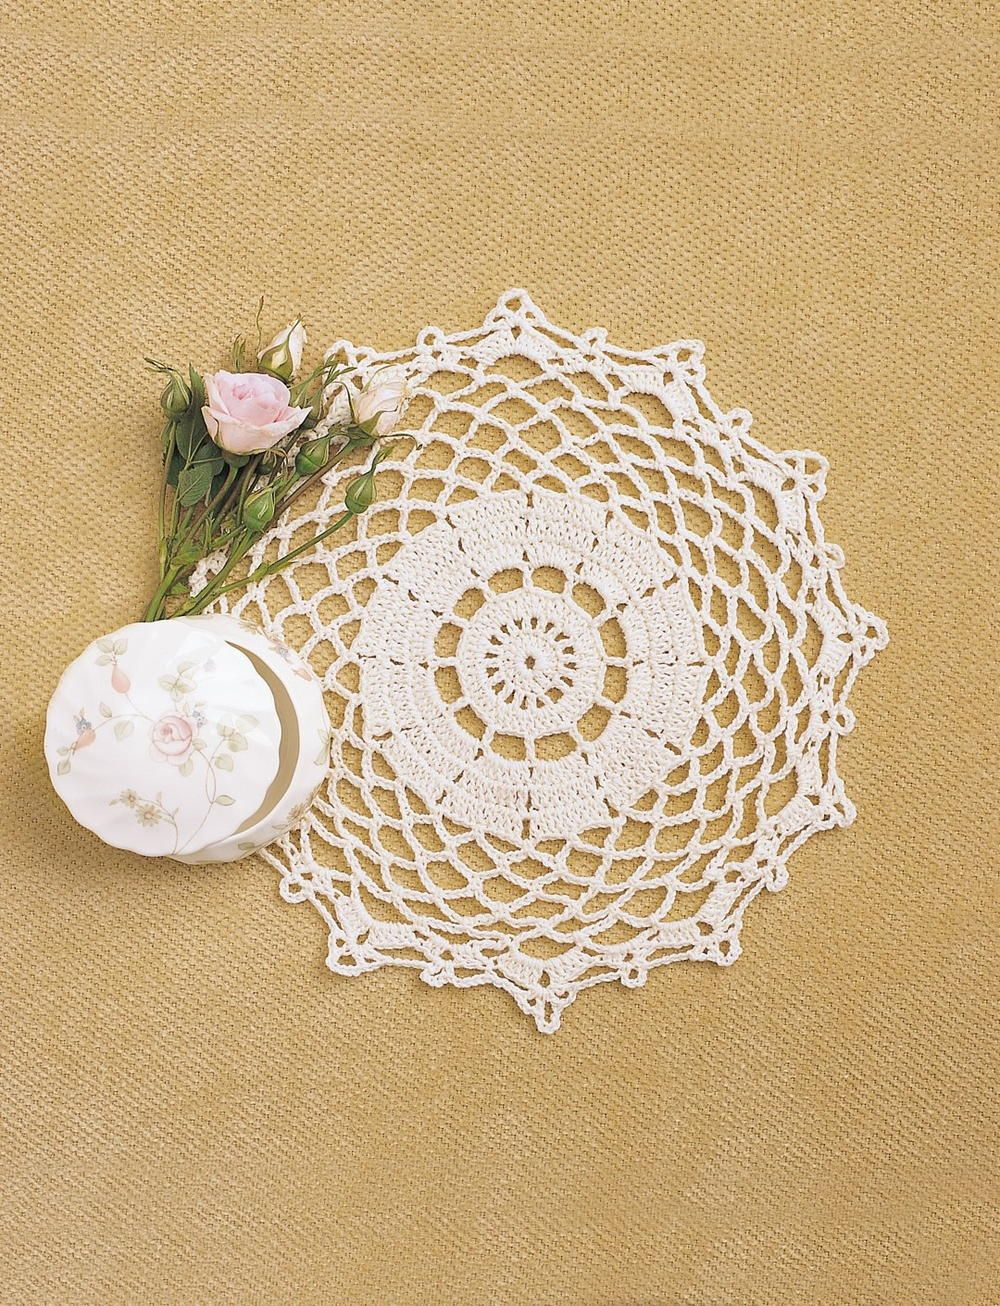 Pretty crochet doily pattern doilies crochet crochet doily create a lovely lace doily with this intermediate crochet pattern to add a fancy touch to bankloansurffo Choice Image